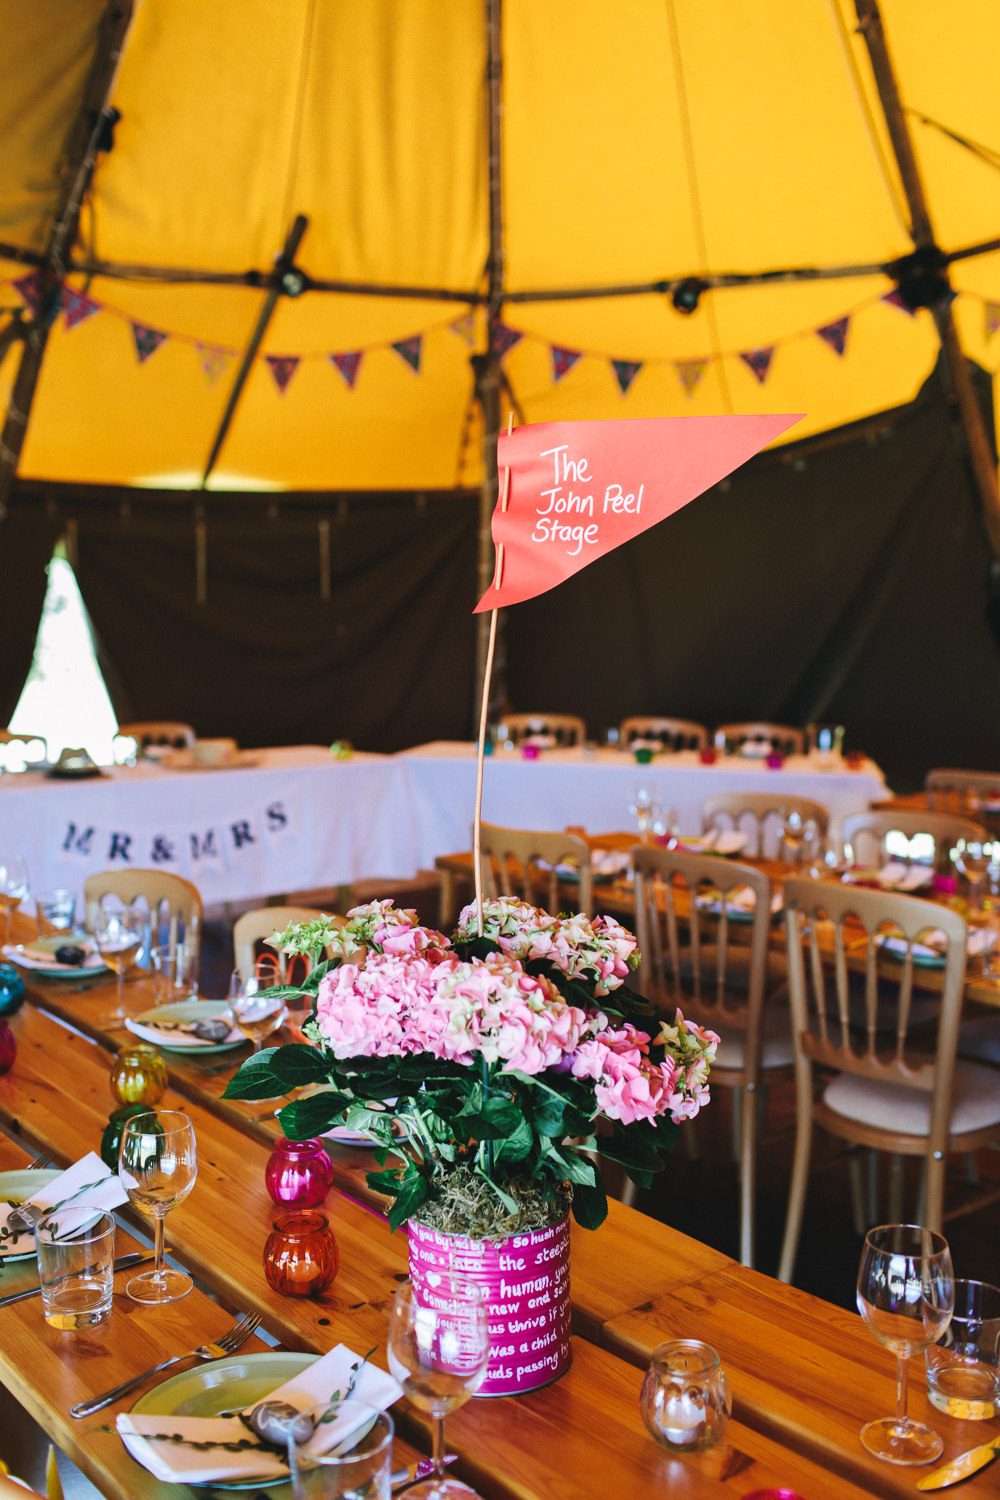 Table Name Festival Flag Tipi Flowers Floral Painted Tin Bach Wen Farm Wedding Jessica O'Shaughnessy Photography